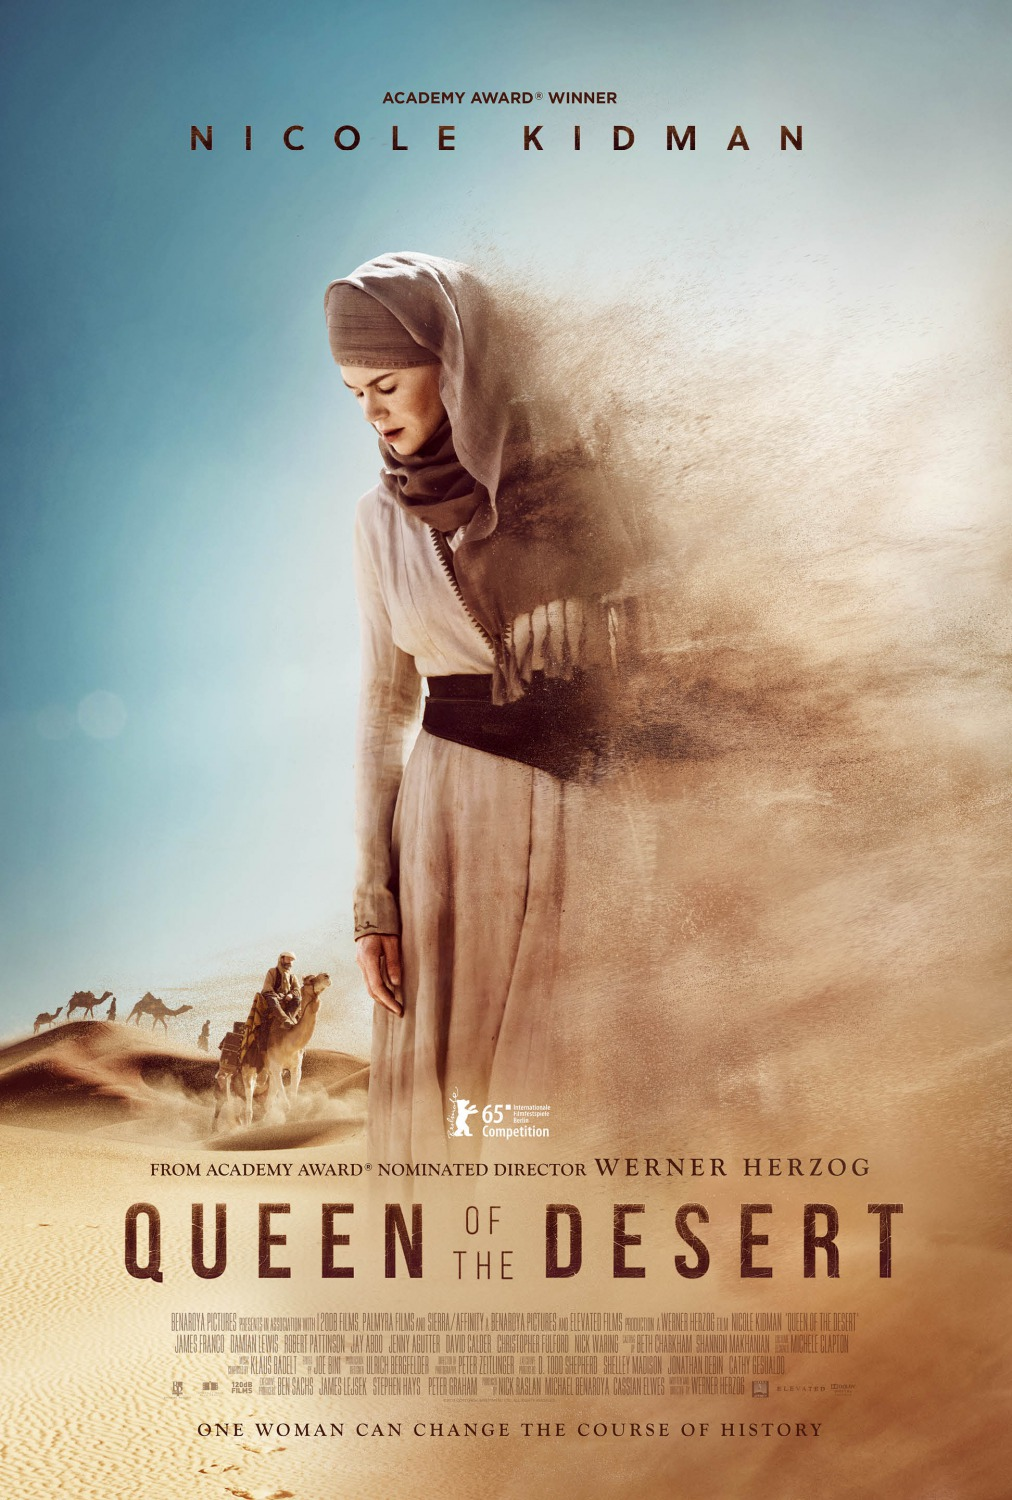 QUEEN OF THE DESERT Trailers, Clips, Images and Posters ...